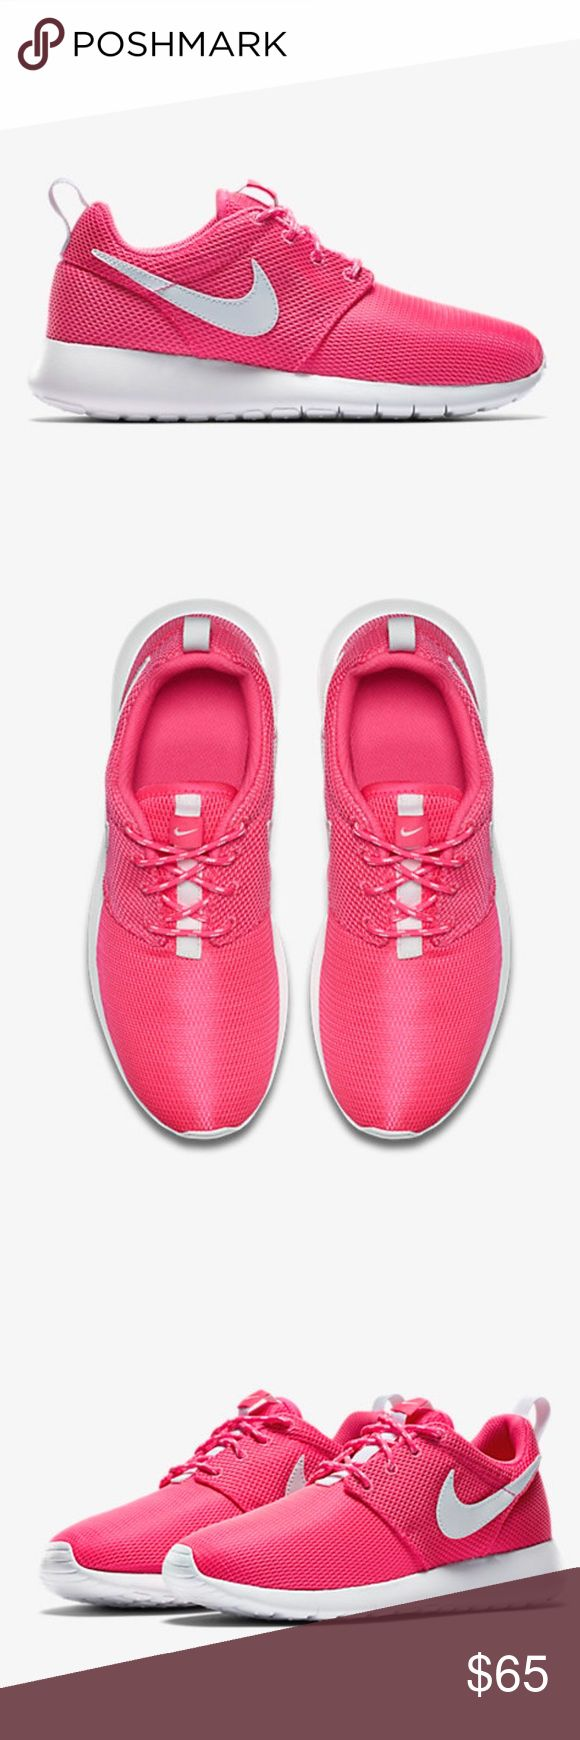 NIKE ROSHE ONE WOMENS PINK/ WHITE SHOES NEW Brand new without box. Shoes are a size 7 youth which converts to a women's size 8.5. I have added a sizing chart for your convenience. 100% authentic directly from Nike. Ships out same day or very next. Nike Shoes Sneakers